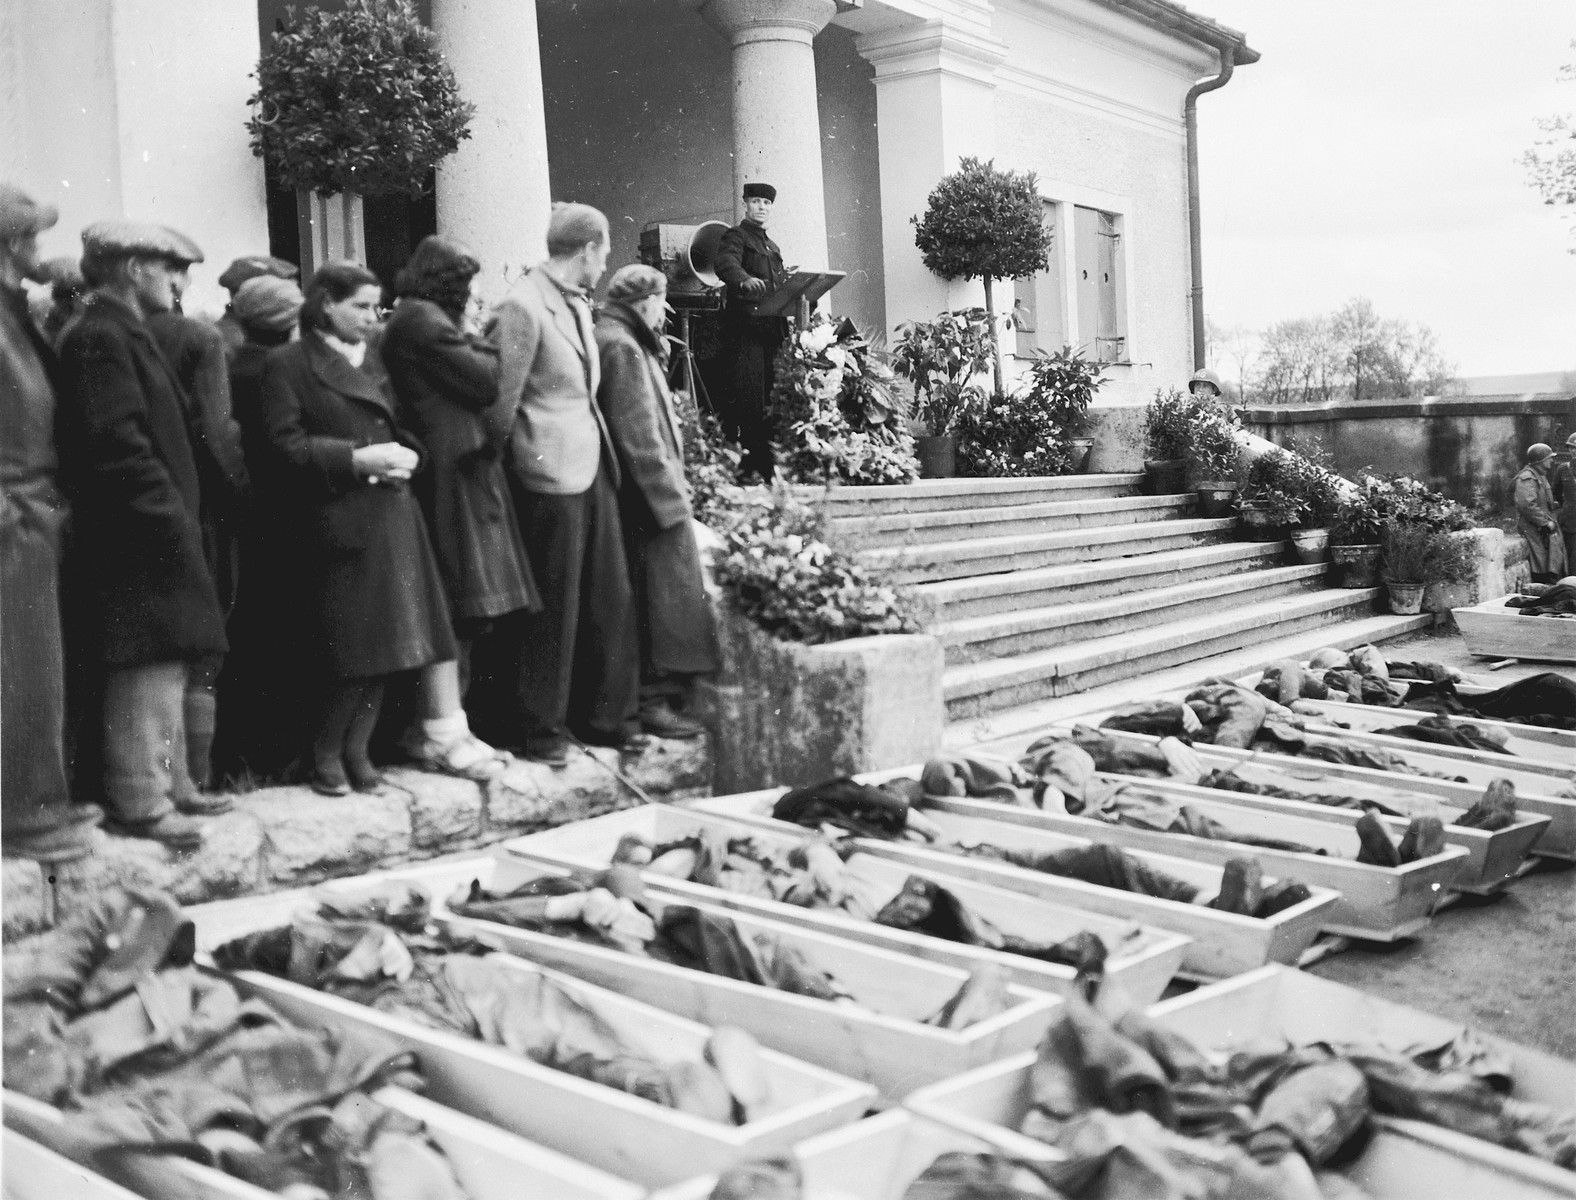 German civilians from Neunburg attend a funeral service for Polish, Hungarian, and Russian Jews found in the forest near their town.    The victims were shot by the SS while on a death march from Flossenbuerg.